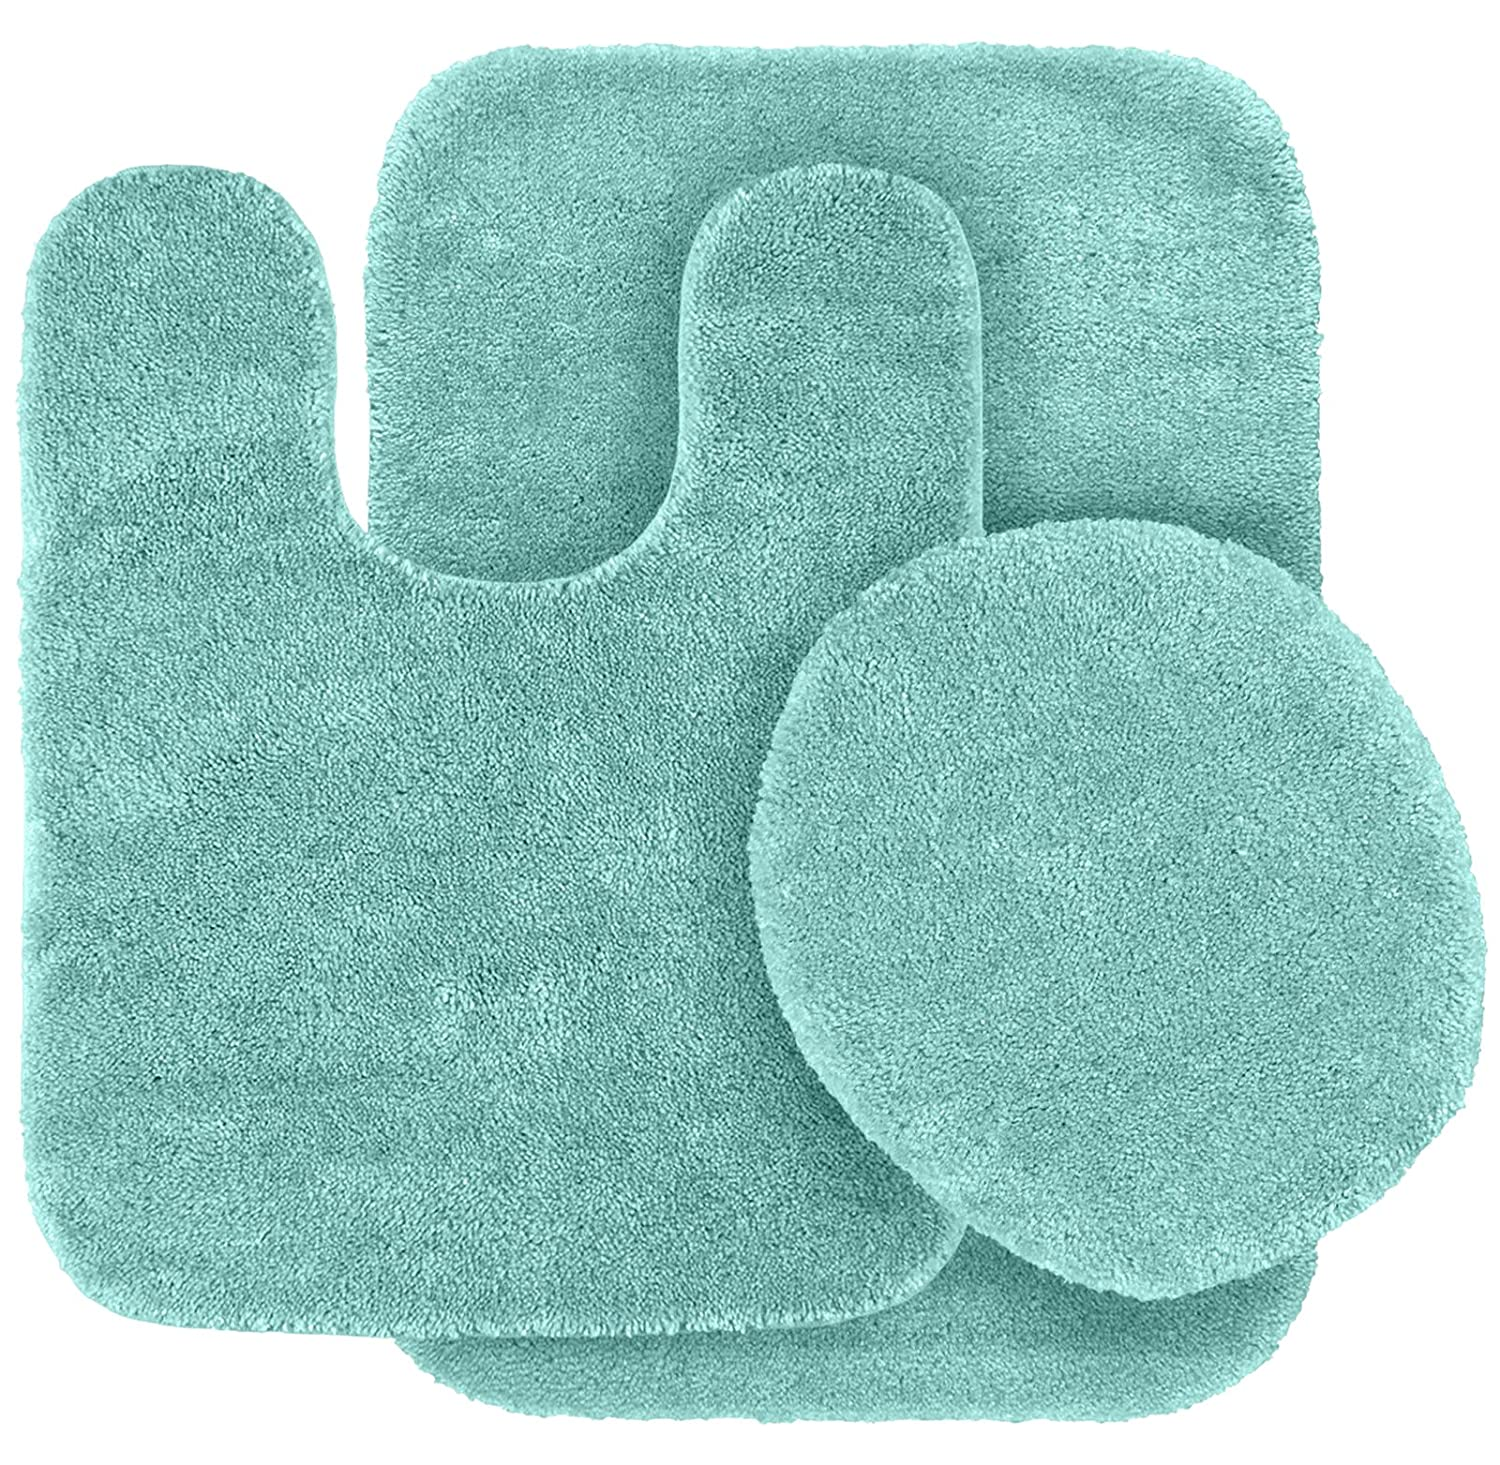 Sears bathroom rugs - Amazon Com Garland Rug 3 Piece Traditional Nylon Washable Bathroom Rug Set Seafoam Home Kitchen